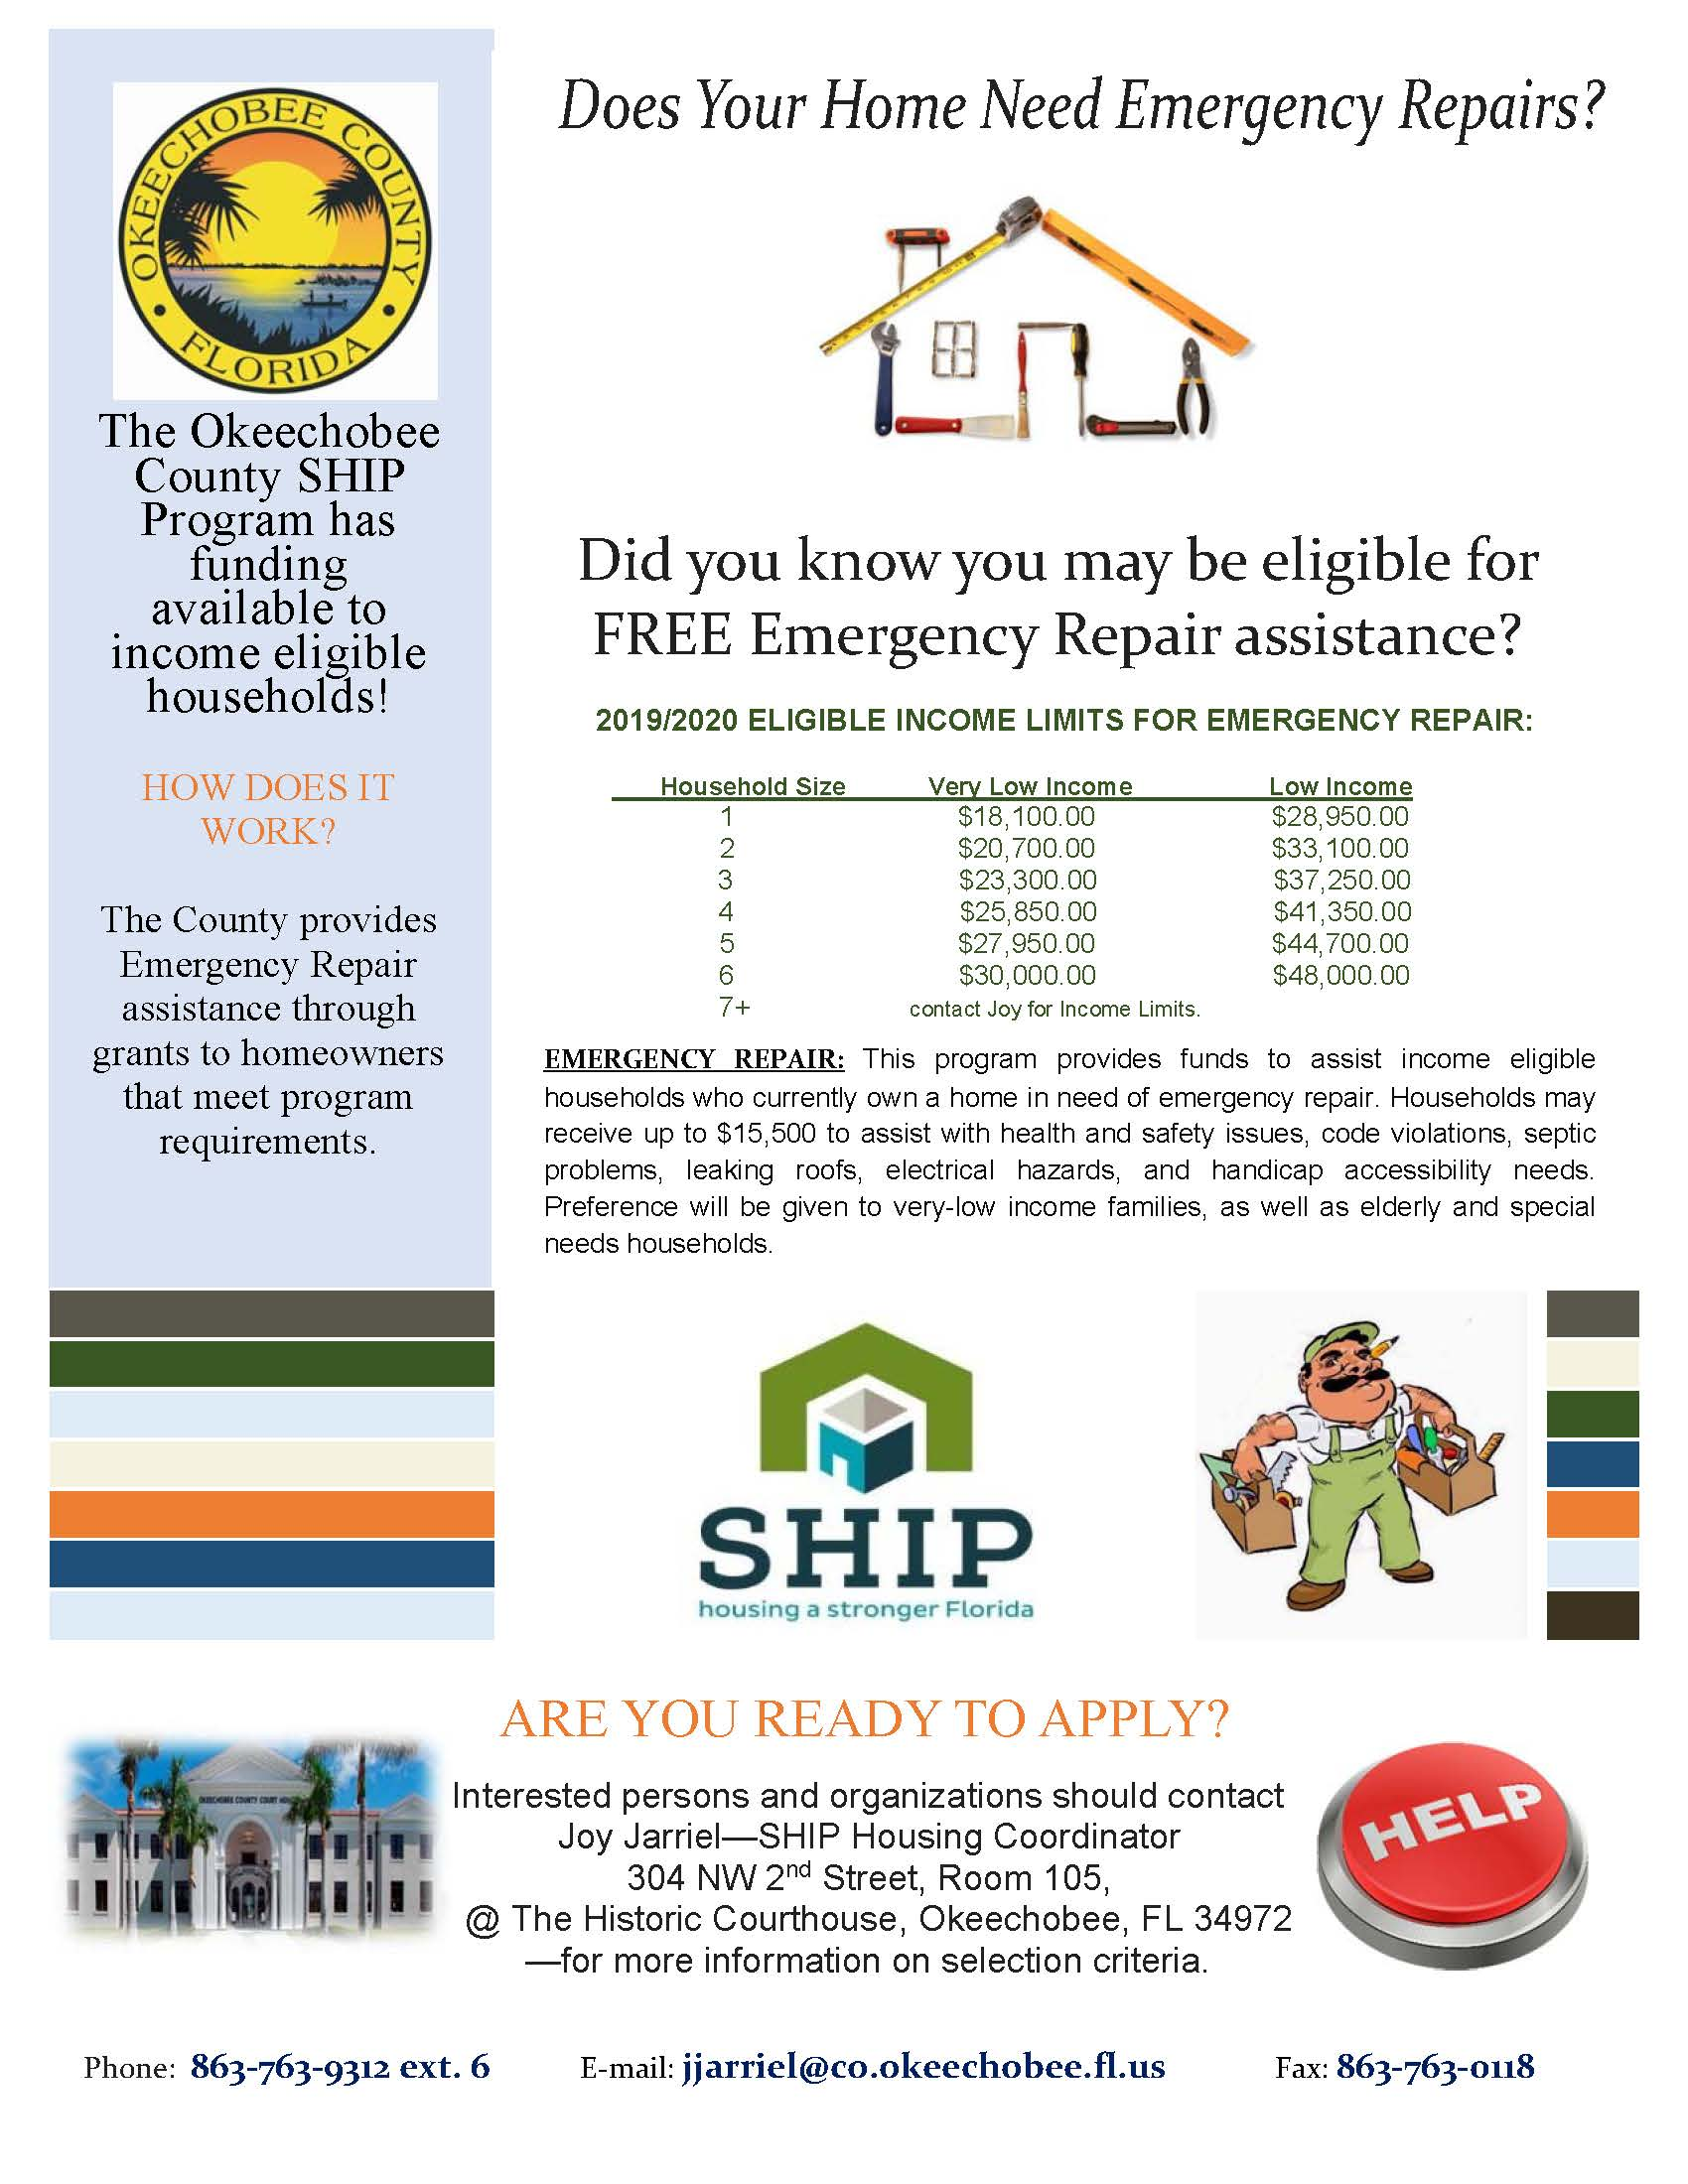 Emergency Home Repair Flyer 2019